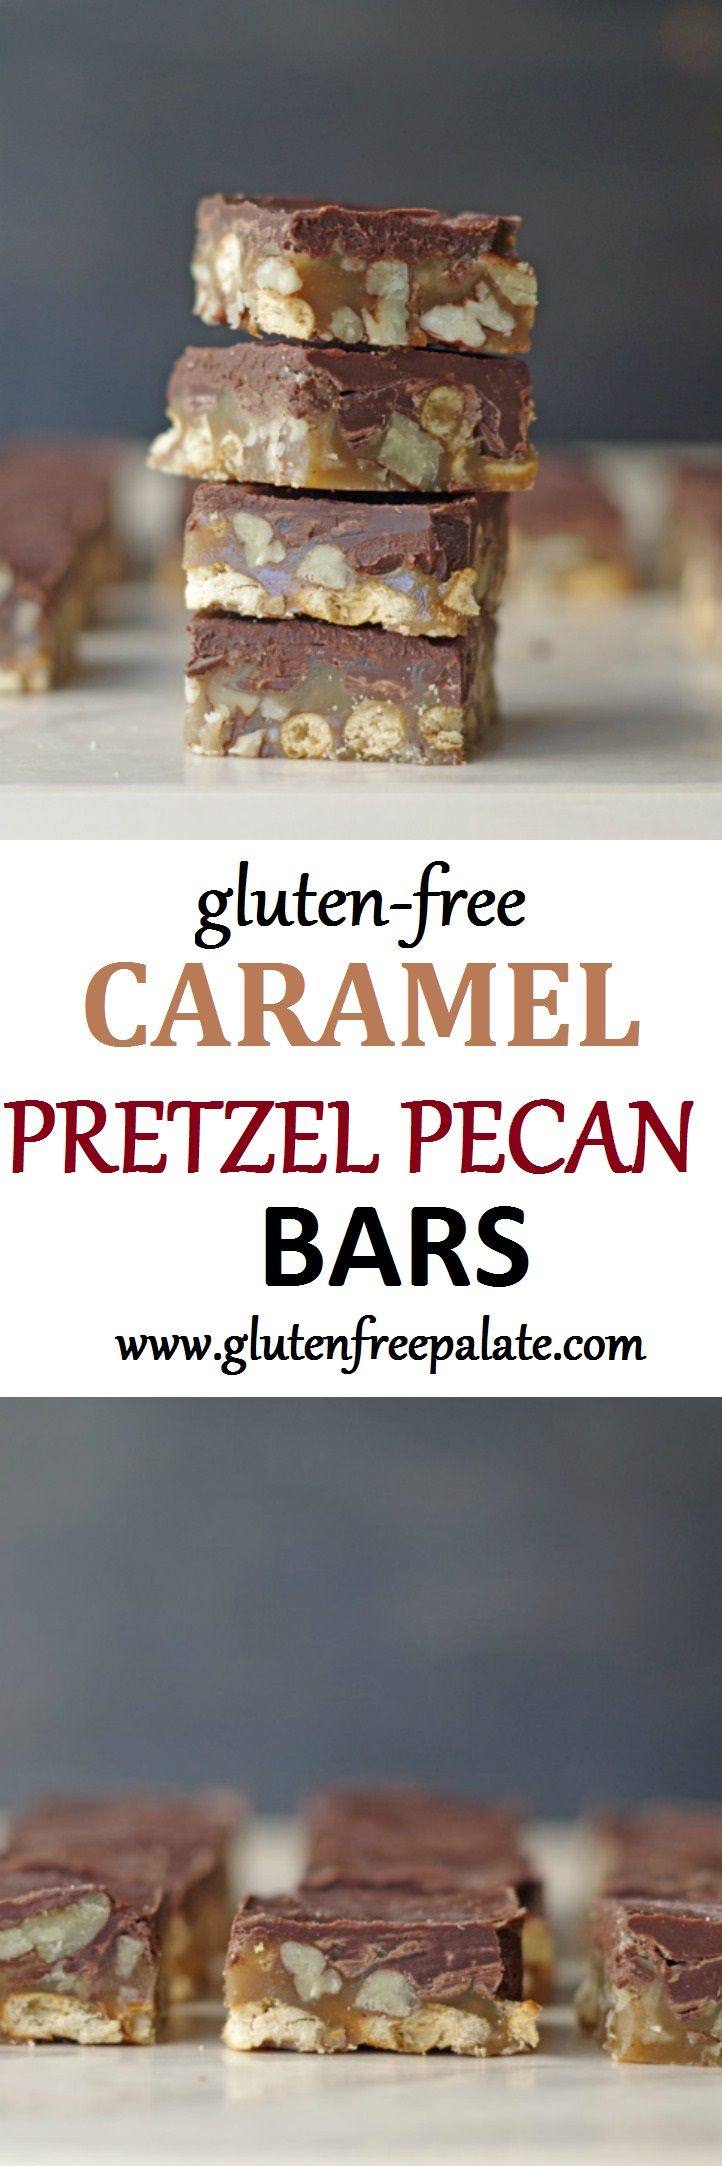 These Gluten-Free Caramel Pretzel Pecan Bars are insanely delicious and are a new fun spin off of traditional turtle clusters.